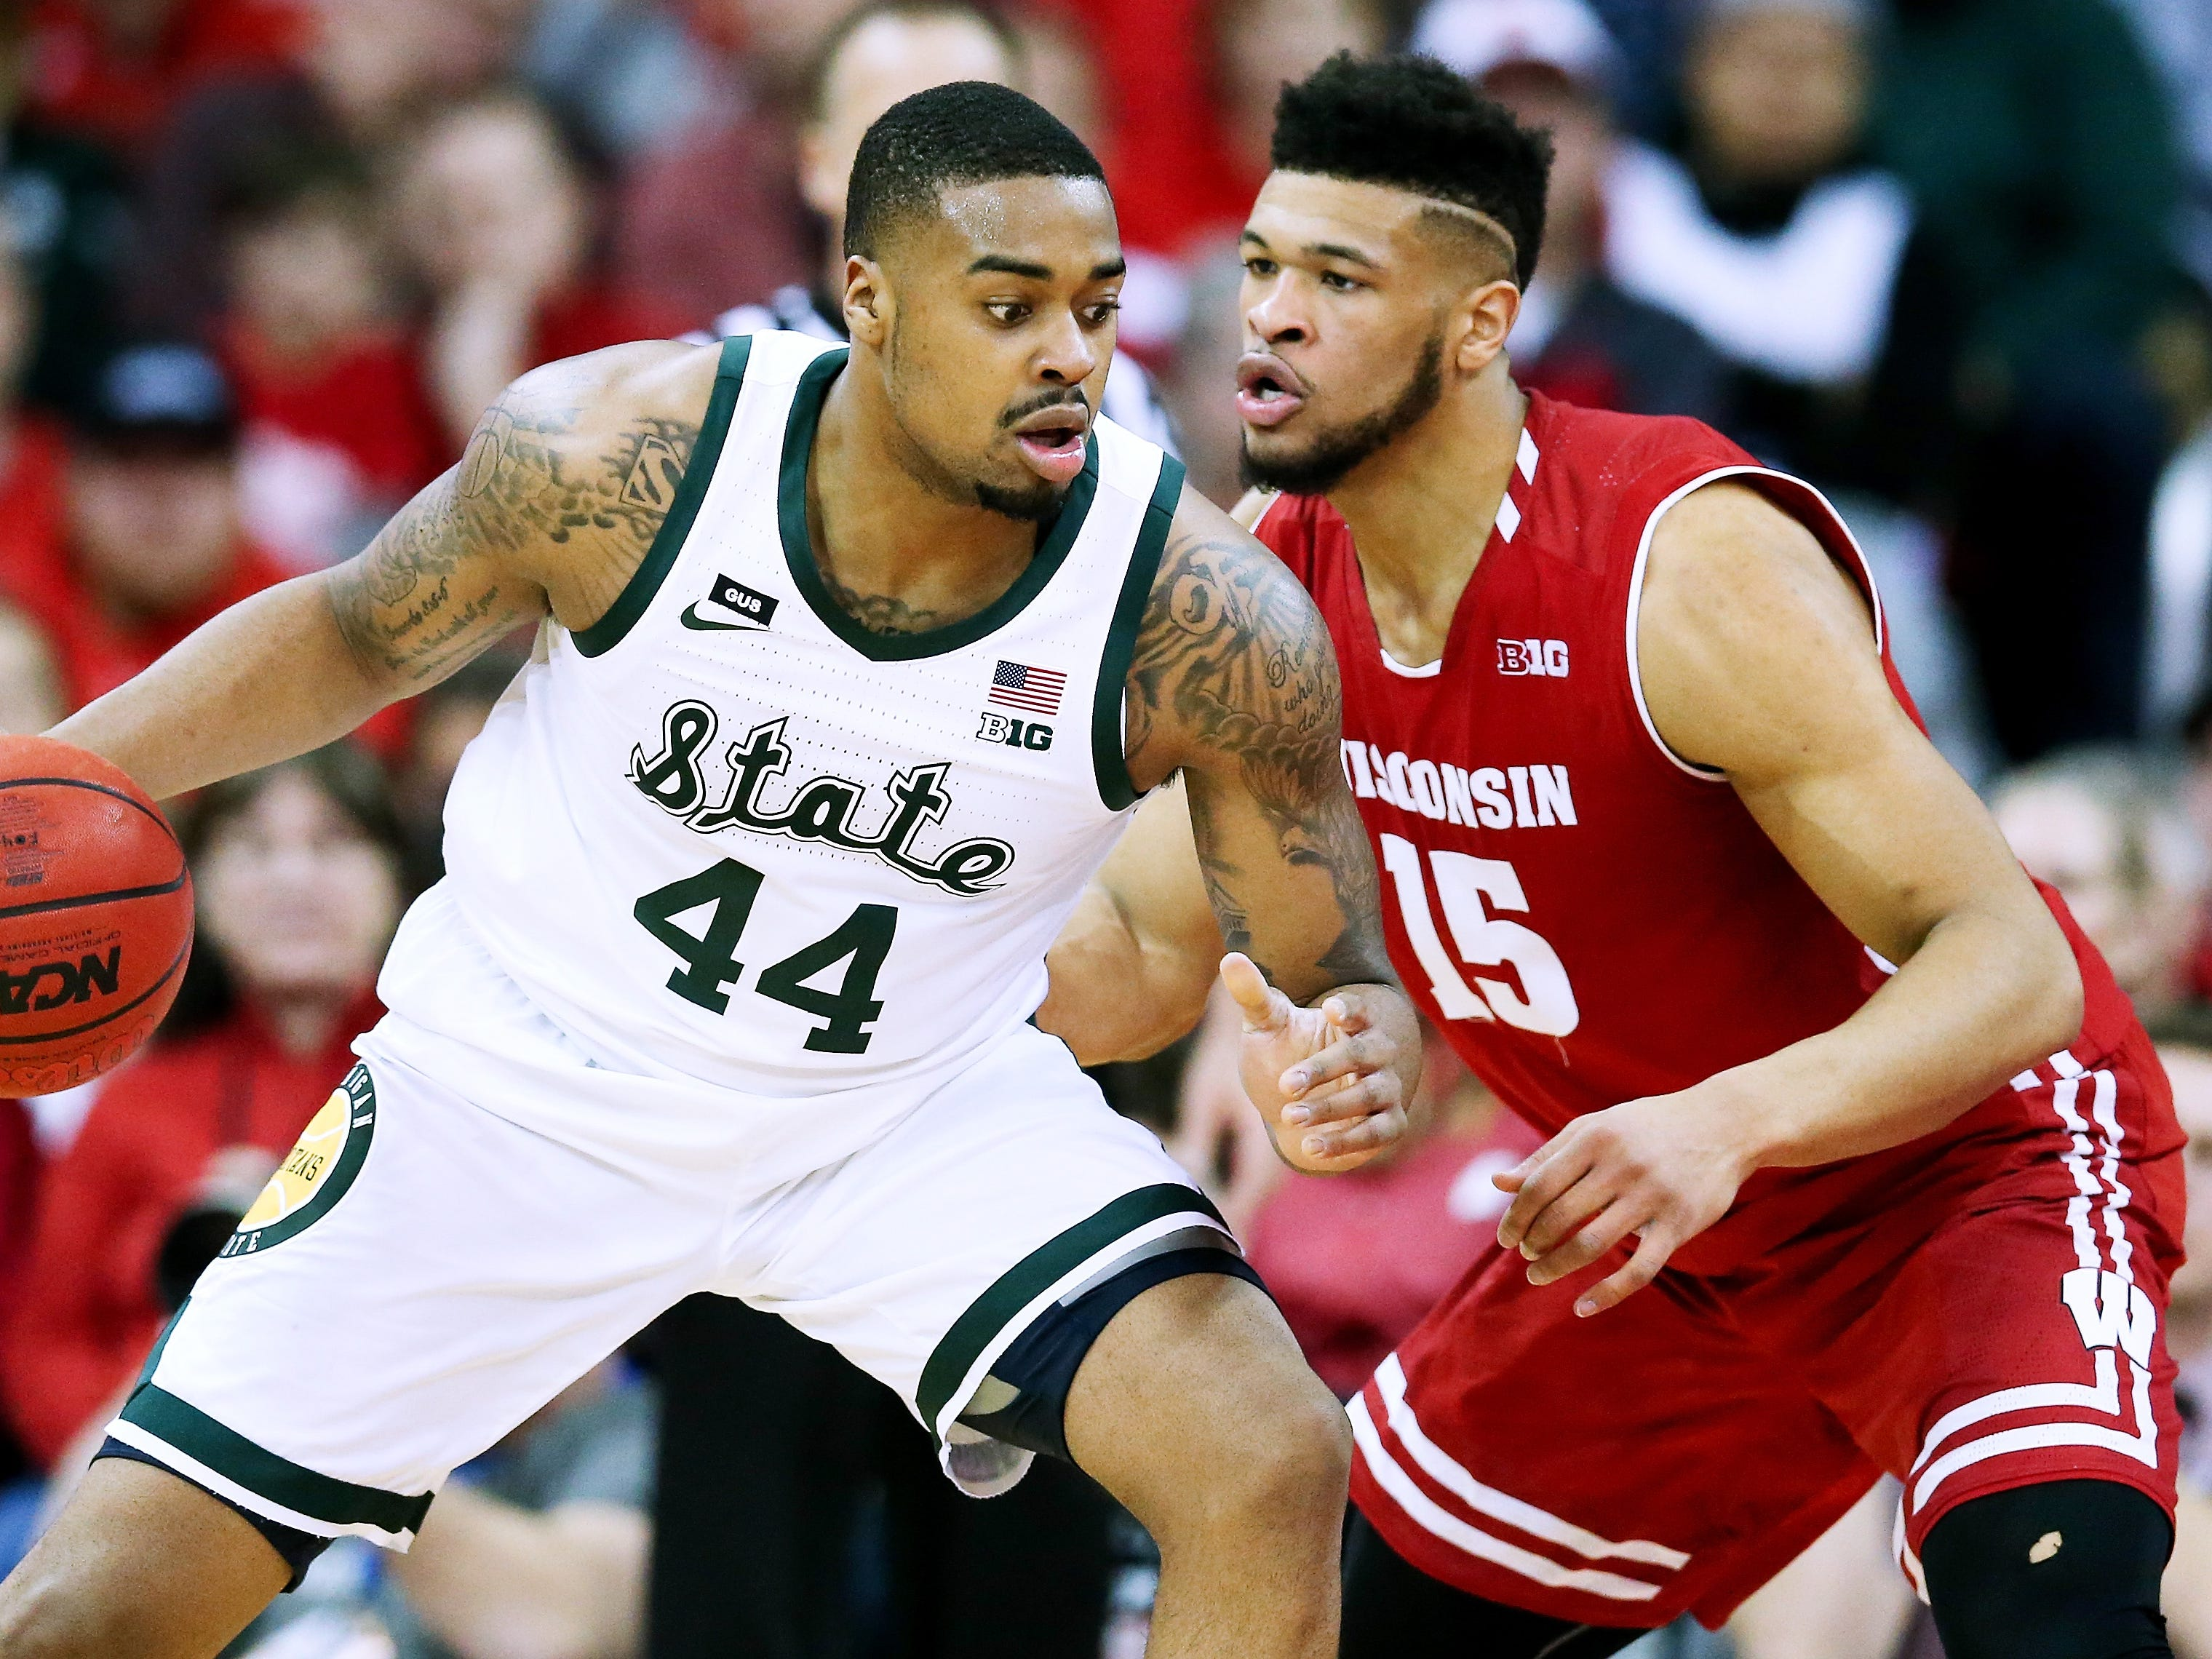 Nick Ward #44 of the Michigan State Spartans dribbles the ball while being guarded by Charles Thomas IV #15 of the Wisconsin Badgers in the first half at the Kohl Center on February 12, 2019 in Madison, Wisconsin.